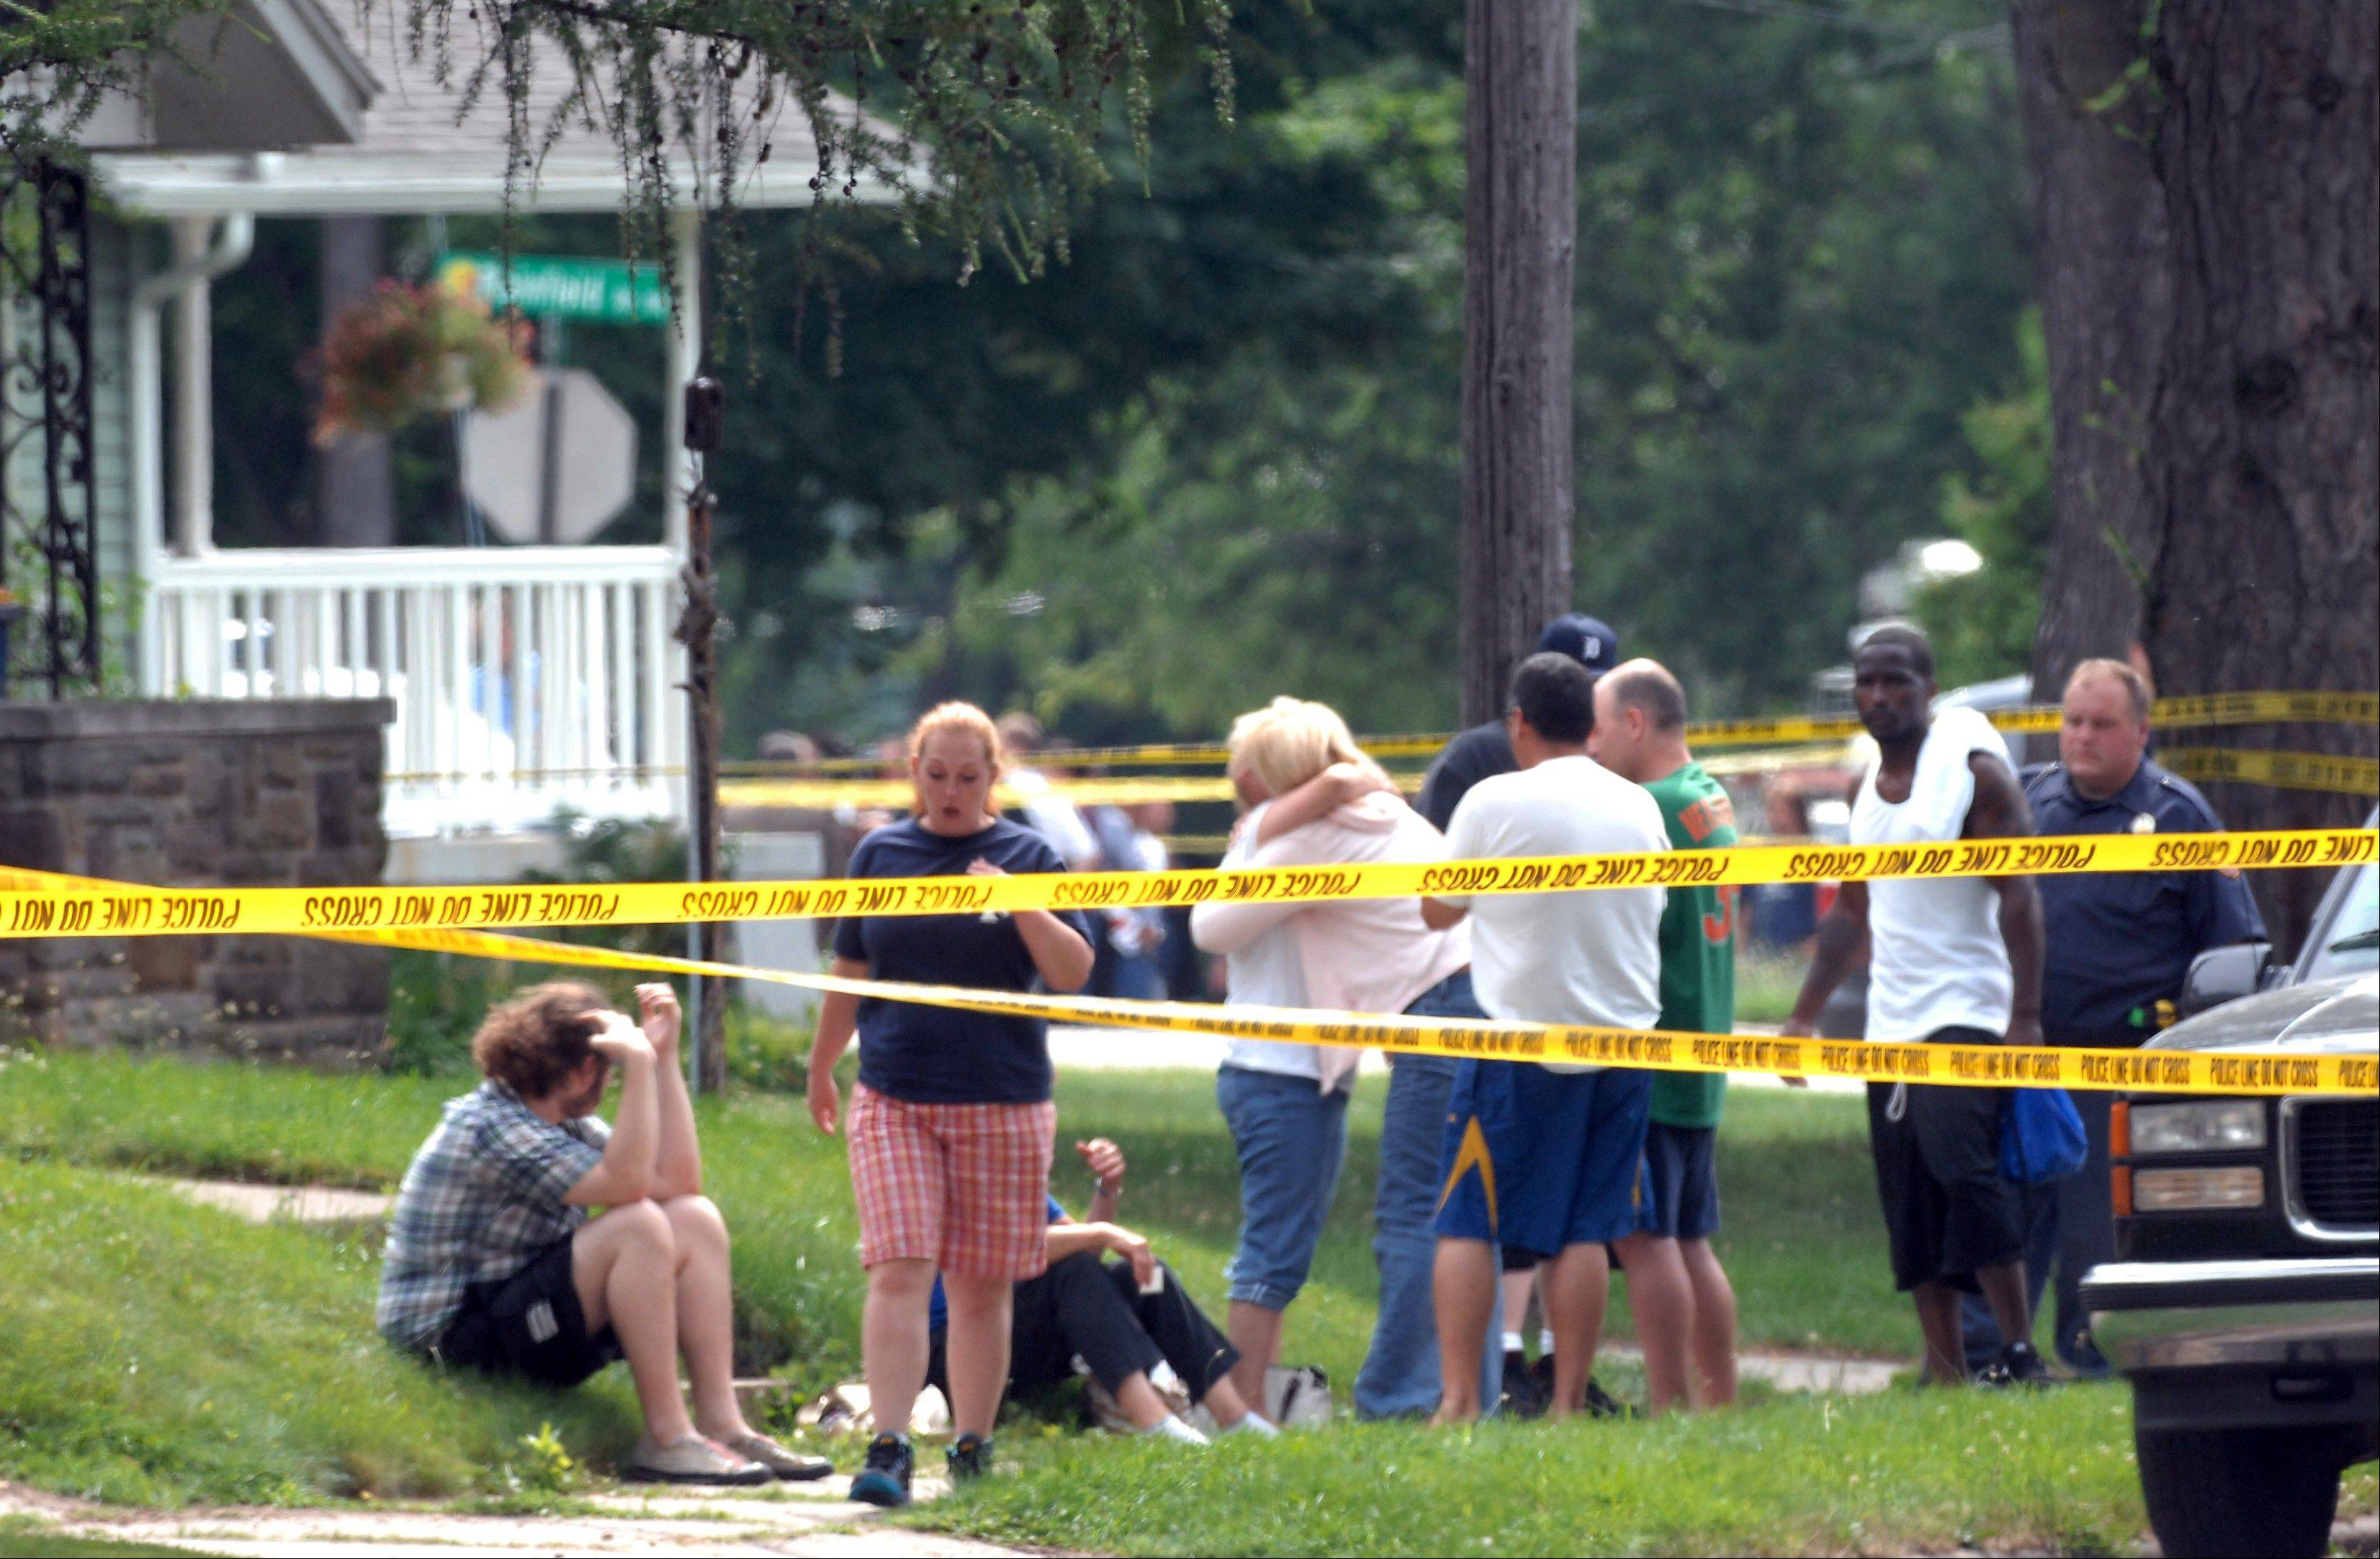 People react near the scene in Grand Rapids, Mich., where three bodies were found Thursday, July 7, 2011. Police say seven people have been fatally shot at two locations in the western Michigan city and the victims include a child.